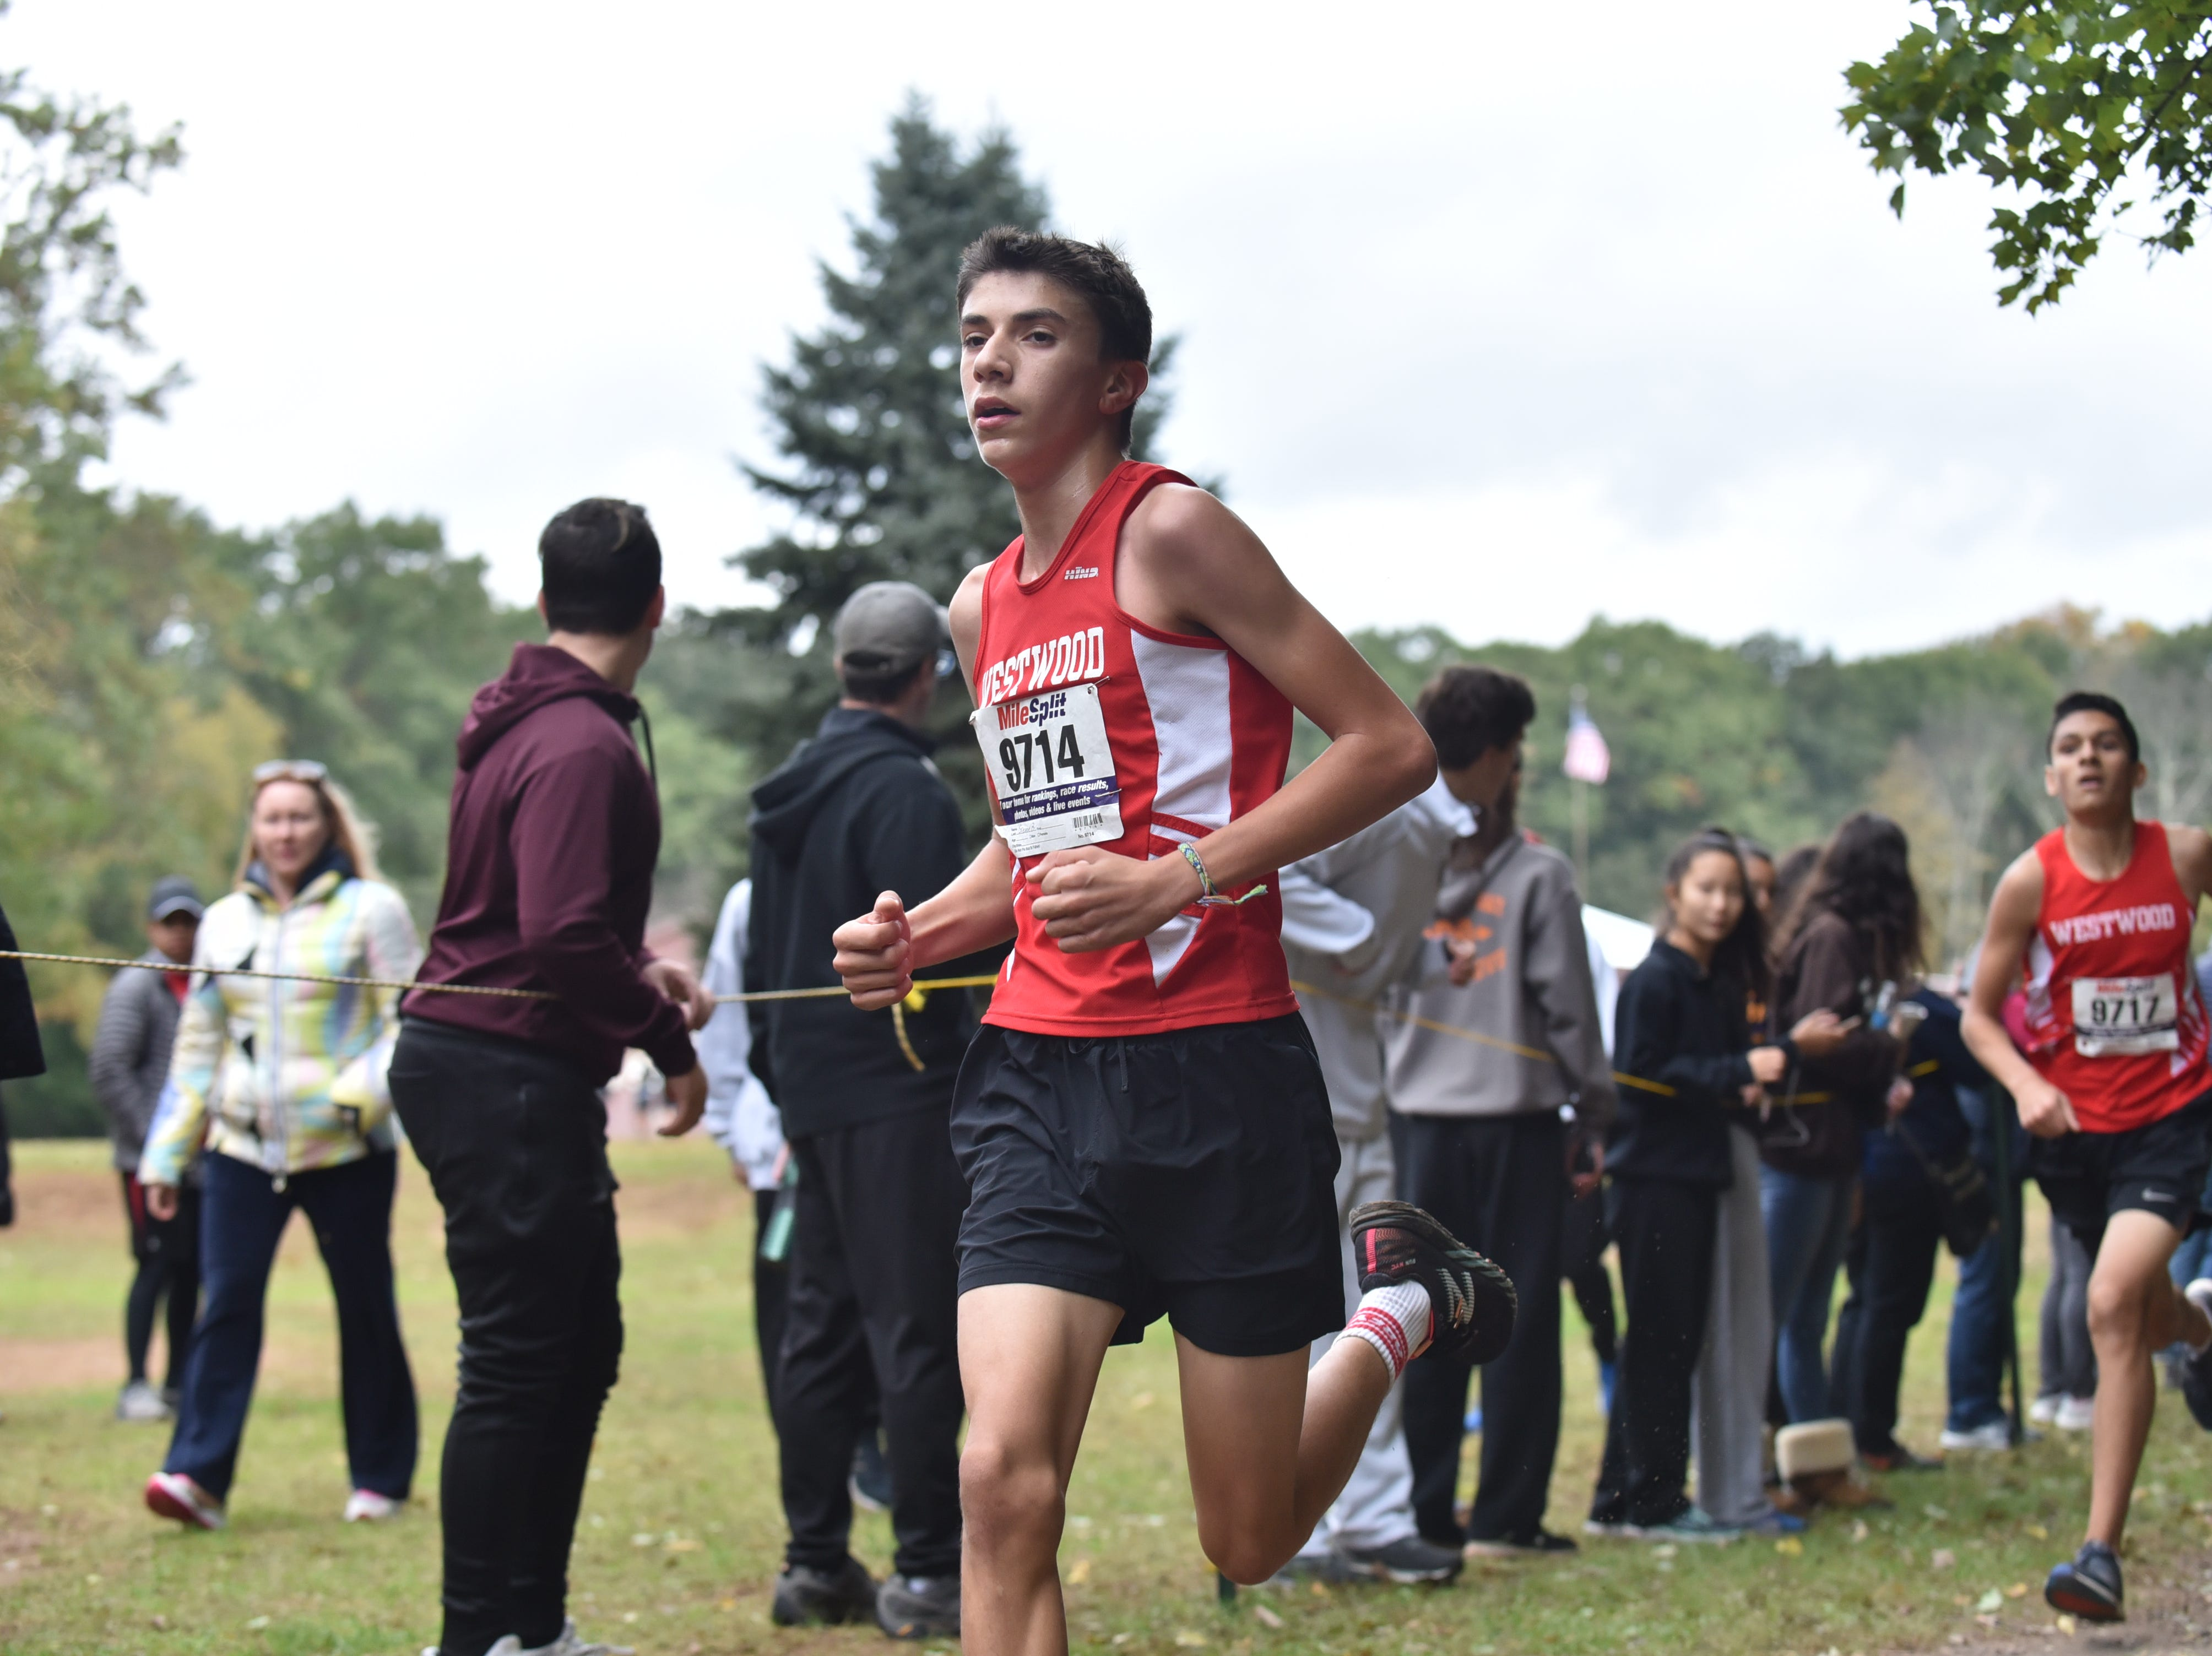 Steve Bello of Westwood wins 3rd in Group C at the Bergen County Cross Country Championships.